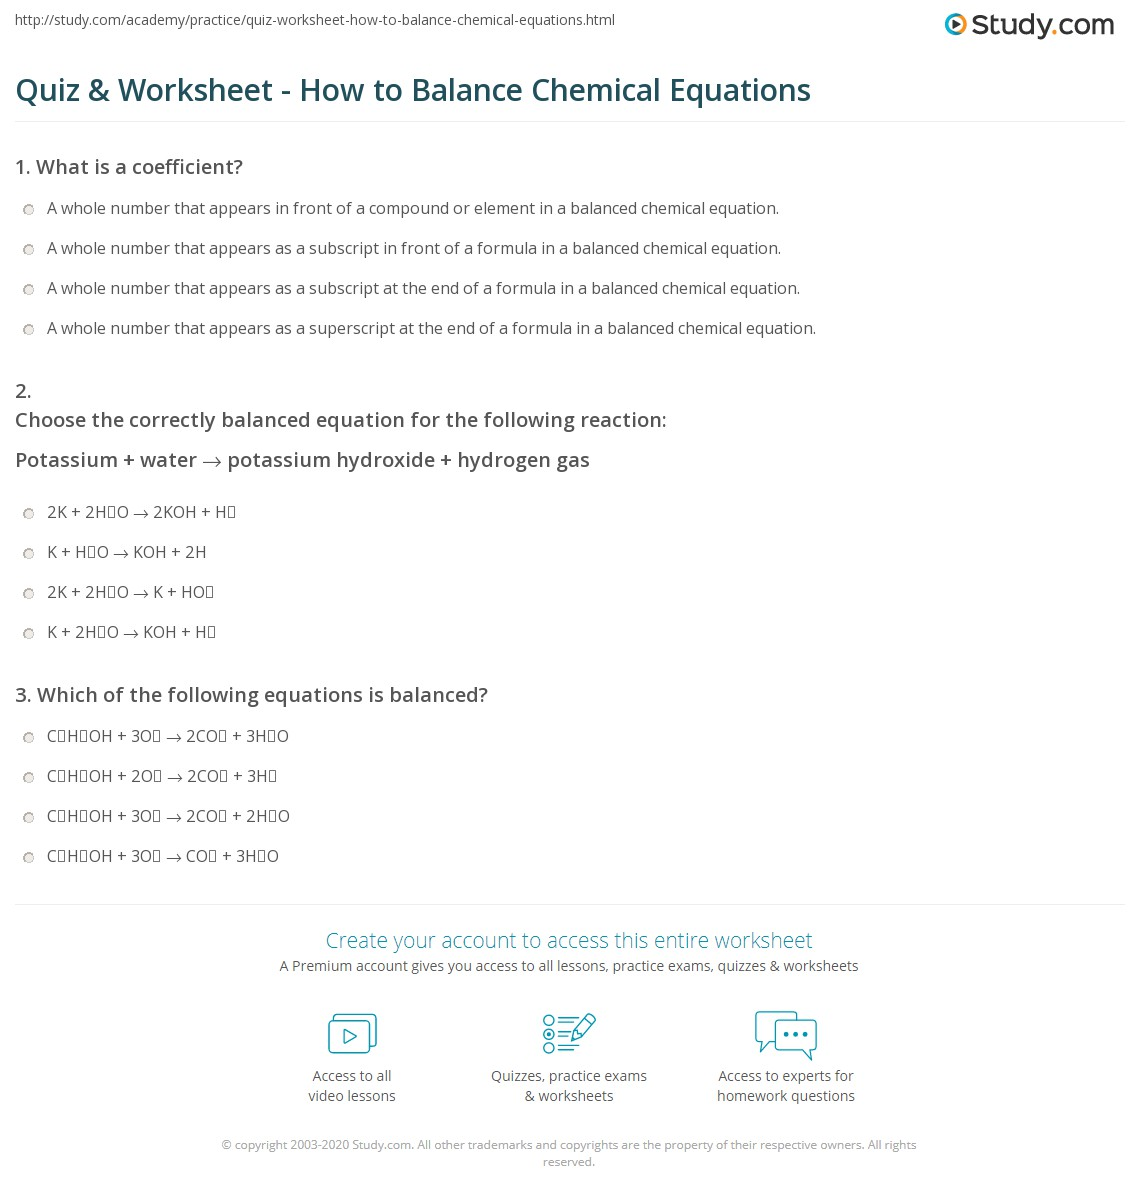 httpsstudyacademypracticequizworksheet – Balancing Equations Worksheet Key